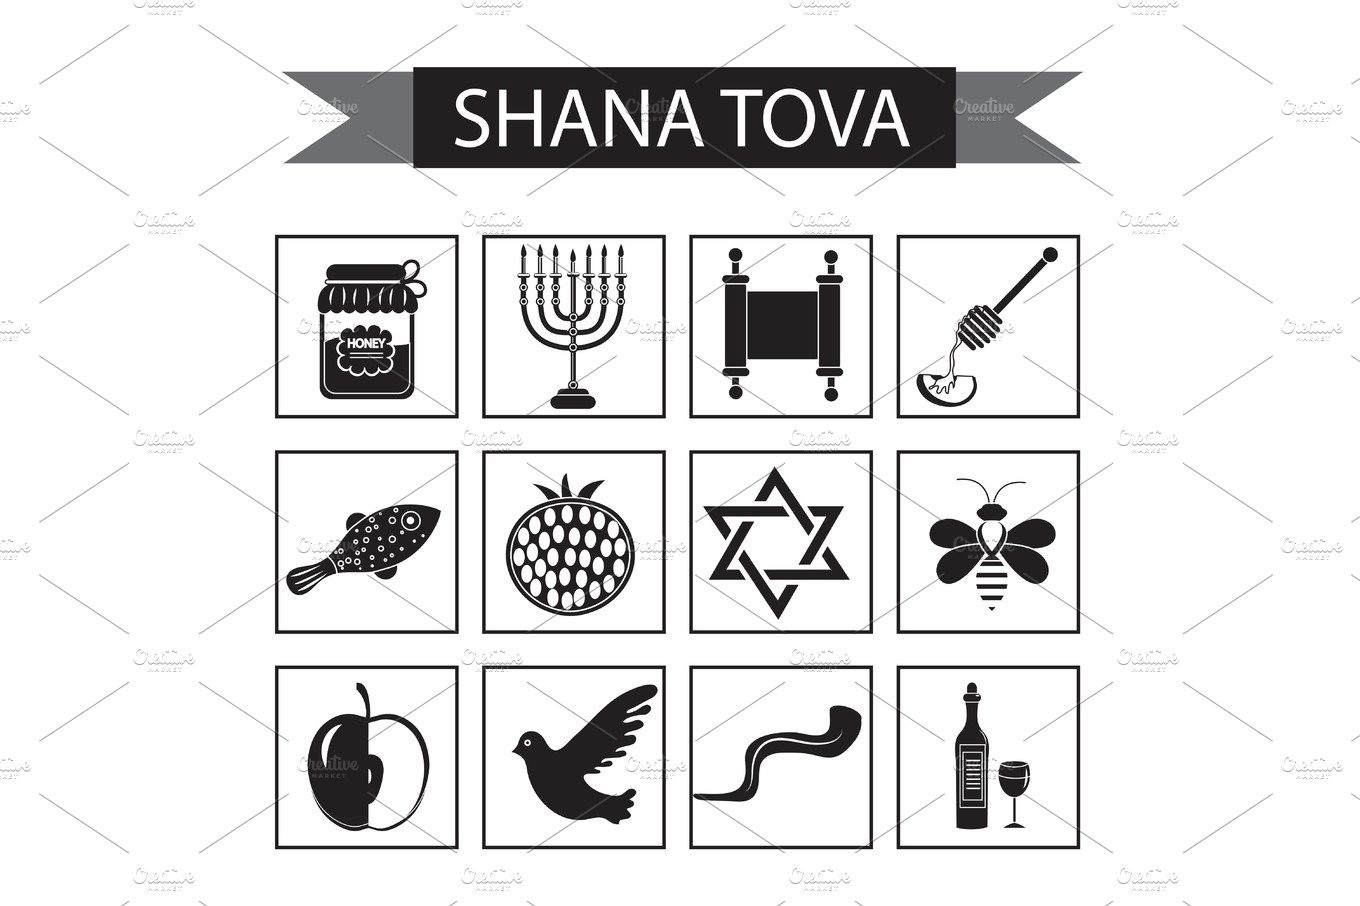 Set icons on the jewish new year black silhouette icon rosh set icons on the jewish new year black silhouette icon rosh hashanah shana tova cartoon icons flat style traditional symbols of jewish culture kristyandbryce Images